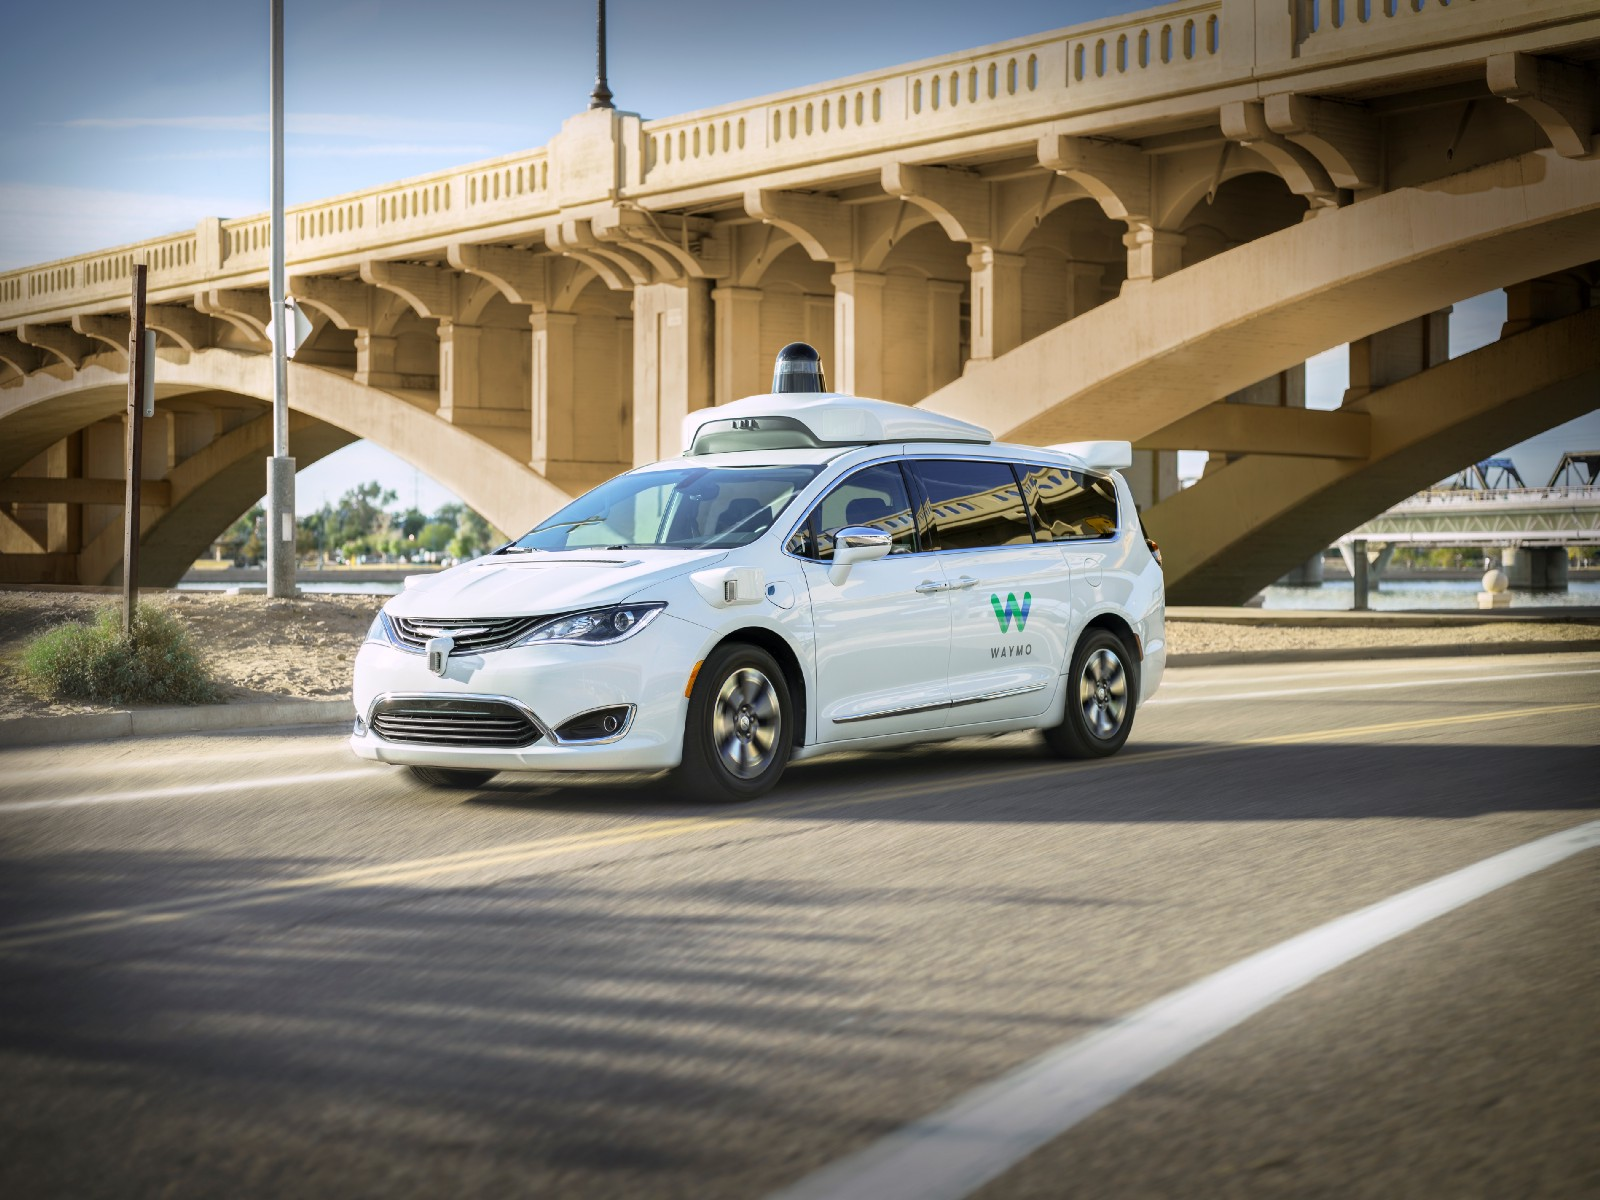 Ride Drive For Once Everyone On John >> Waymo One The Next Step On Our Self Driving Journey